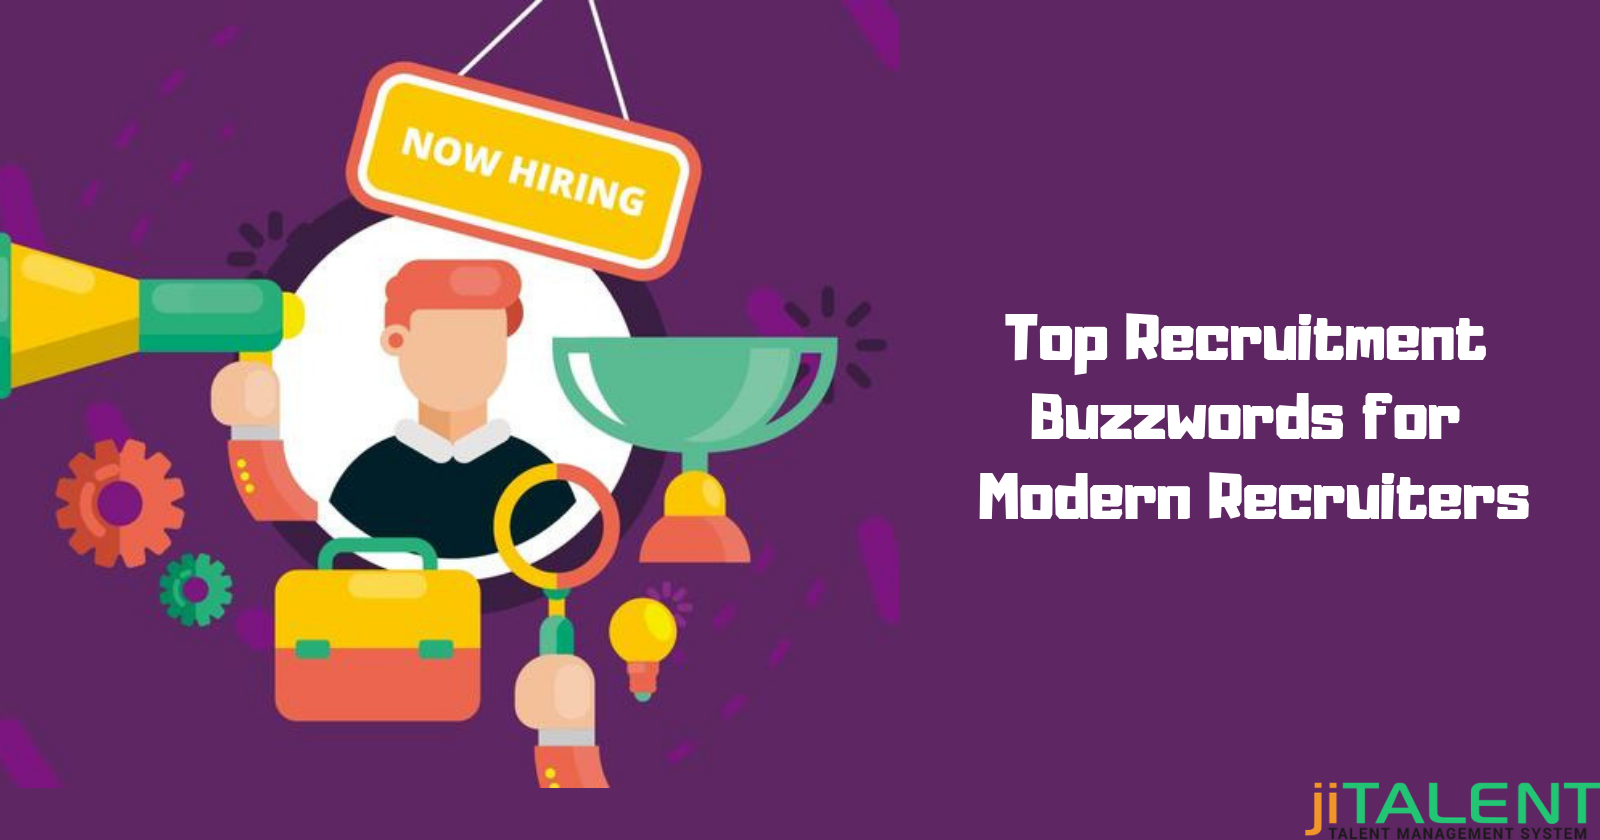 Top Recruitment Buzzwords for Modern Recruiters